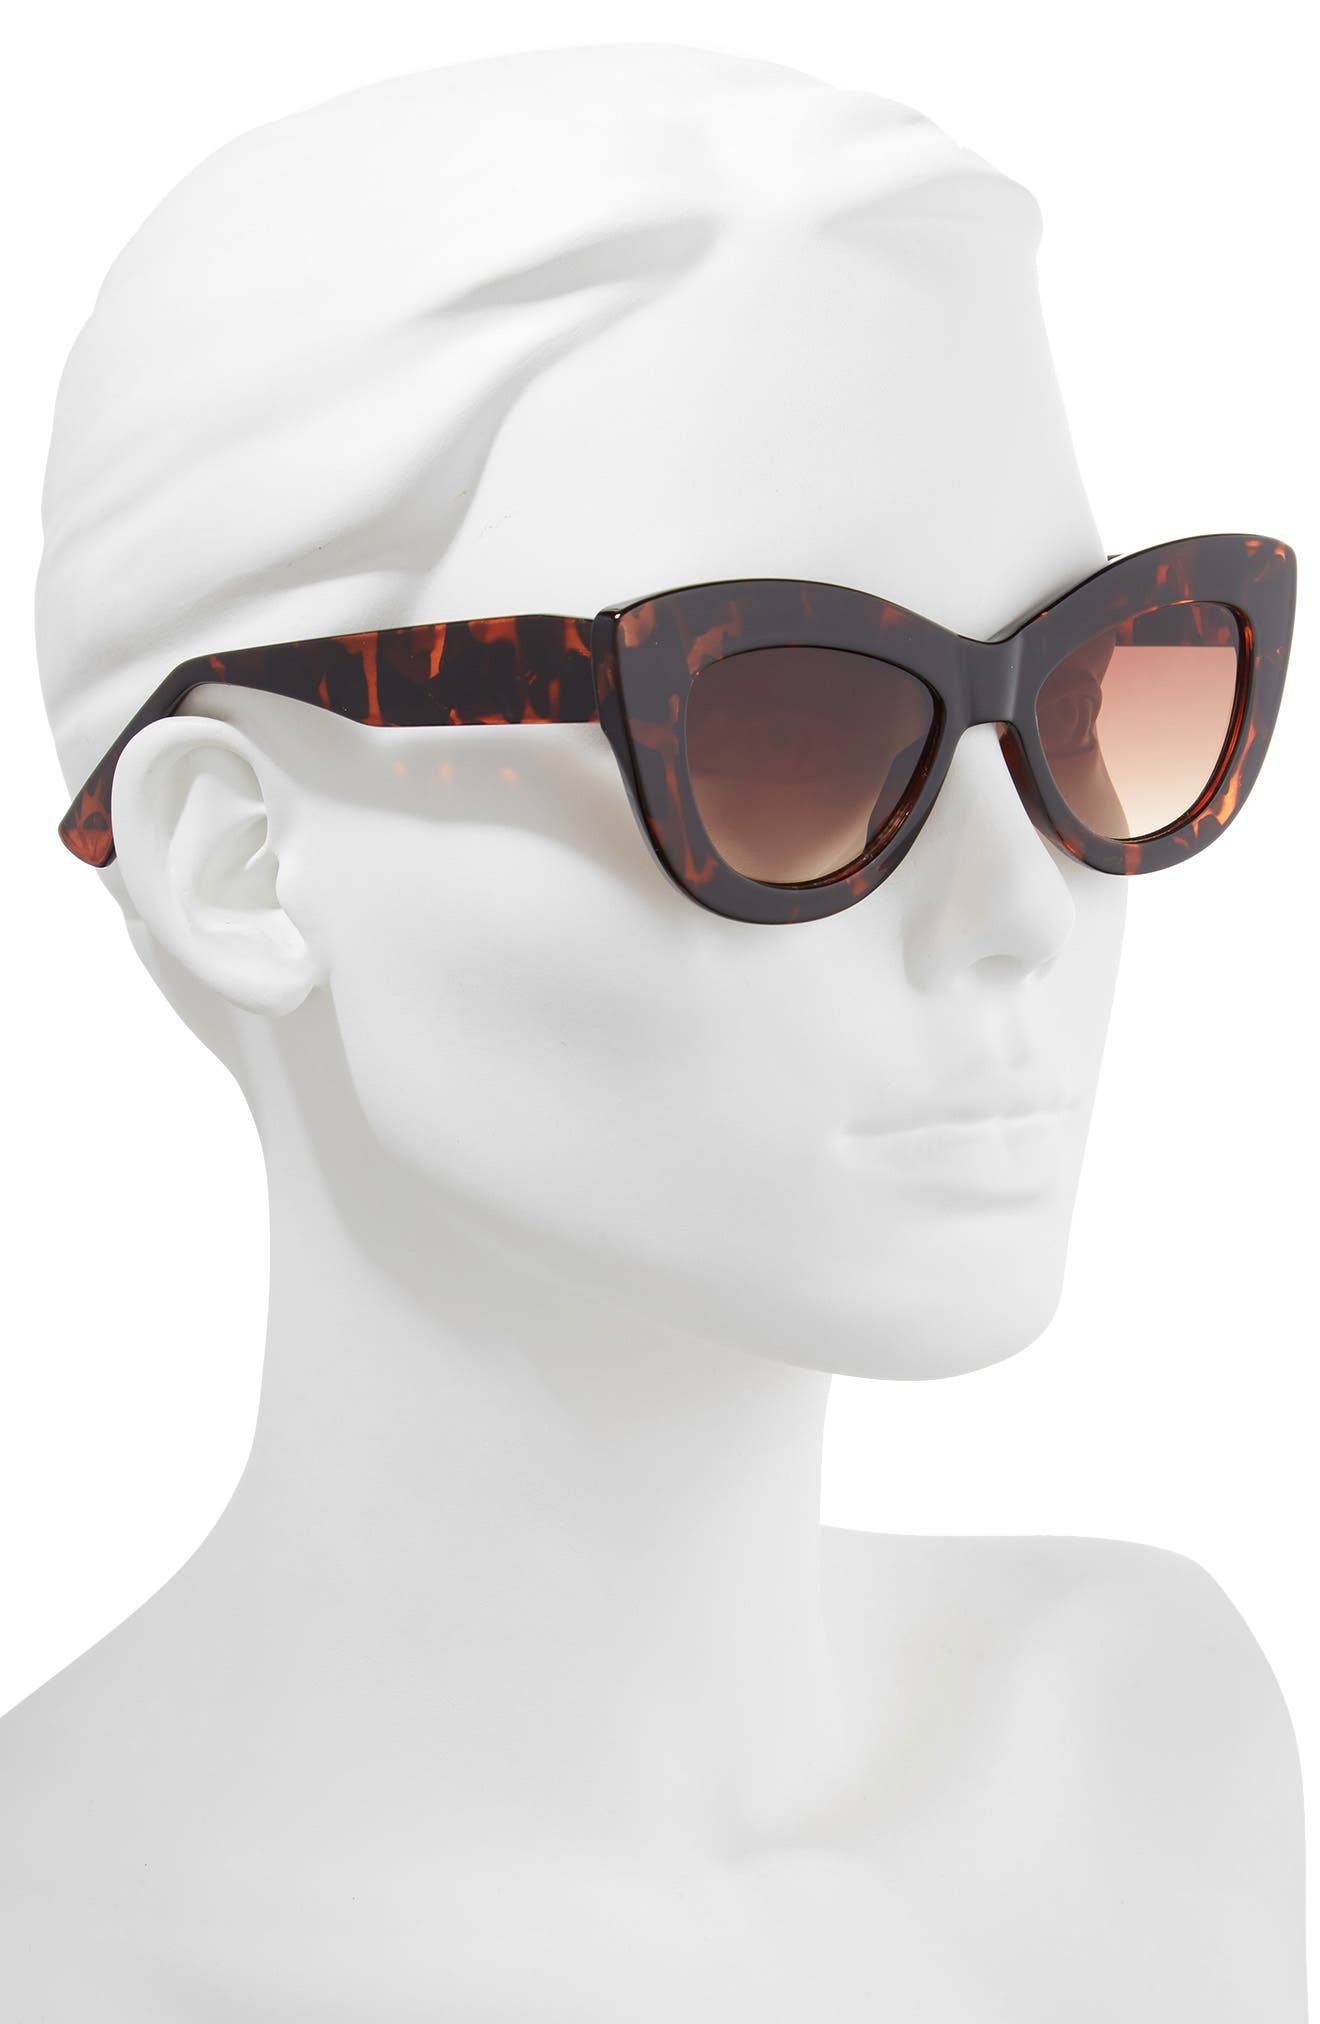 65mm Cat Eye Sunglasses,                             Alternate thumbnail 2, color,                             200